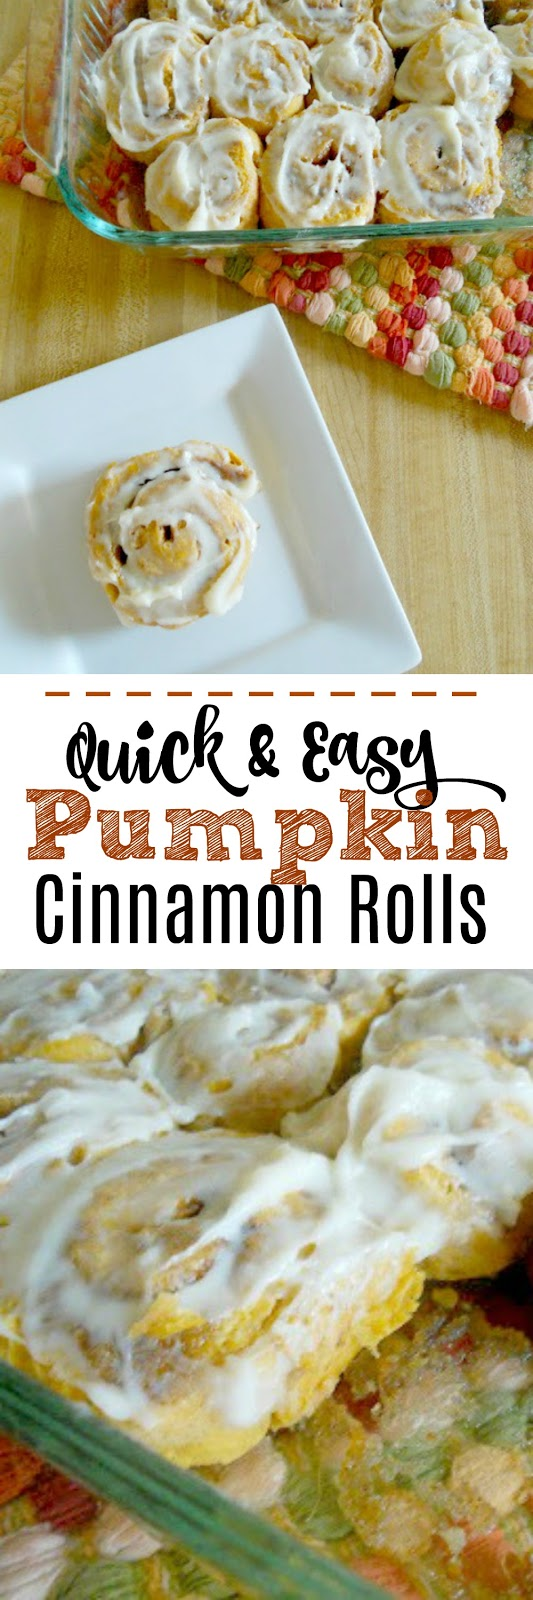 Pumpkin Cinnamon Rolls...quick and easy, they require NO yeast!  In under an hour you'll be sinking your teeth into these delicious cinnamon rolls.  A family favorite for Thanksgiving weekend! (sweetandsavoryfood.com)